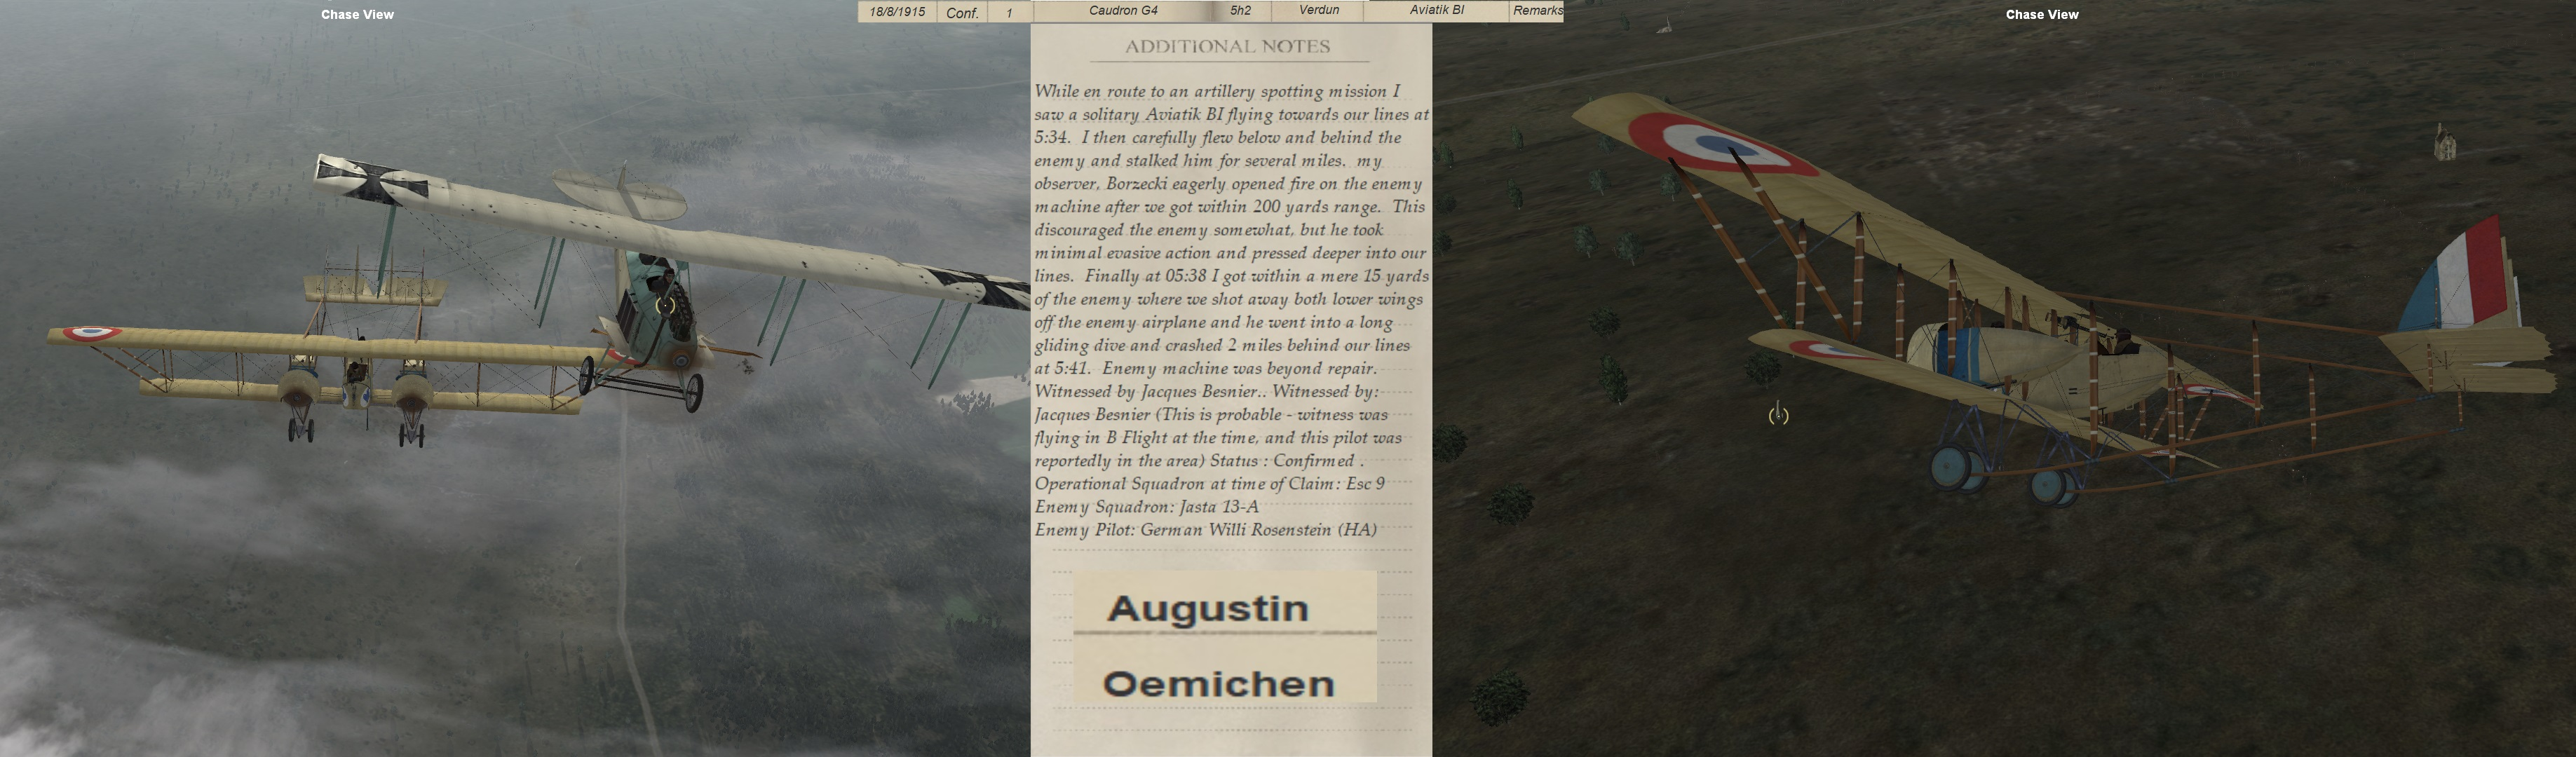 Augustin Oemichen (First Confirmed Victory, Third Claim) .jpg